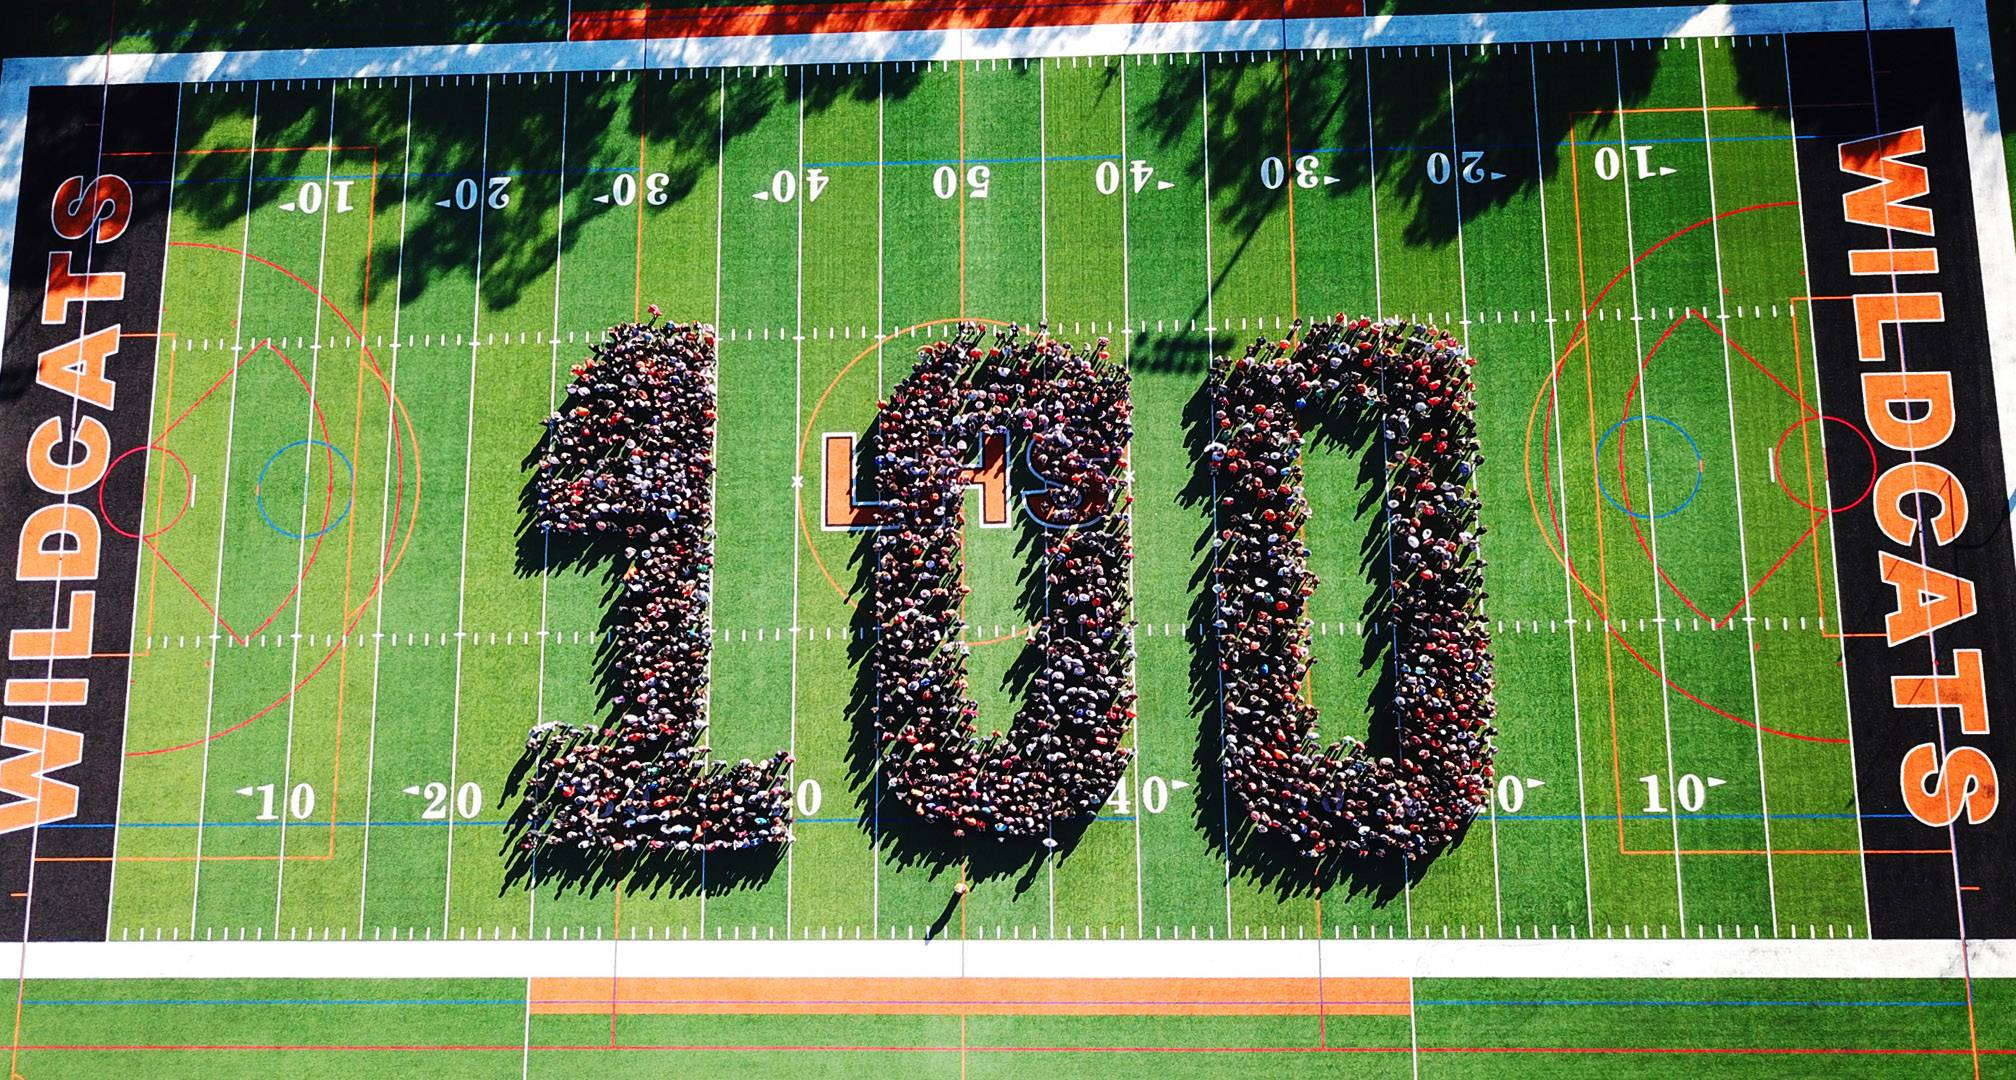 Libertyville High School students, faculty and staff celebrated the centennial on Friday by forming a 100 on the school's football field.